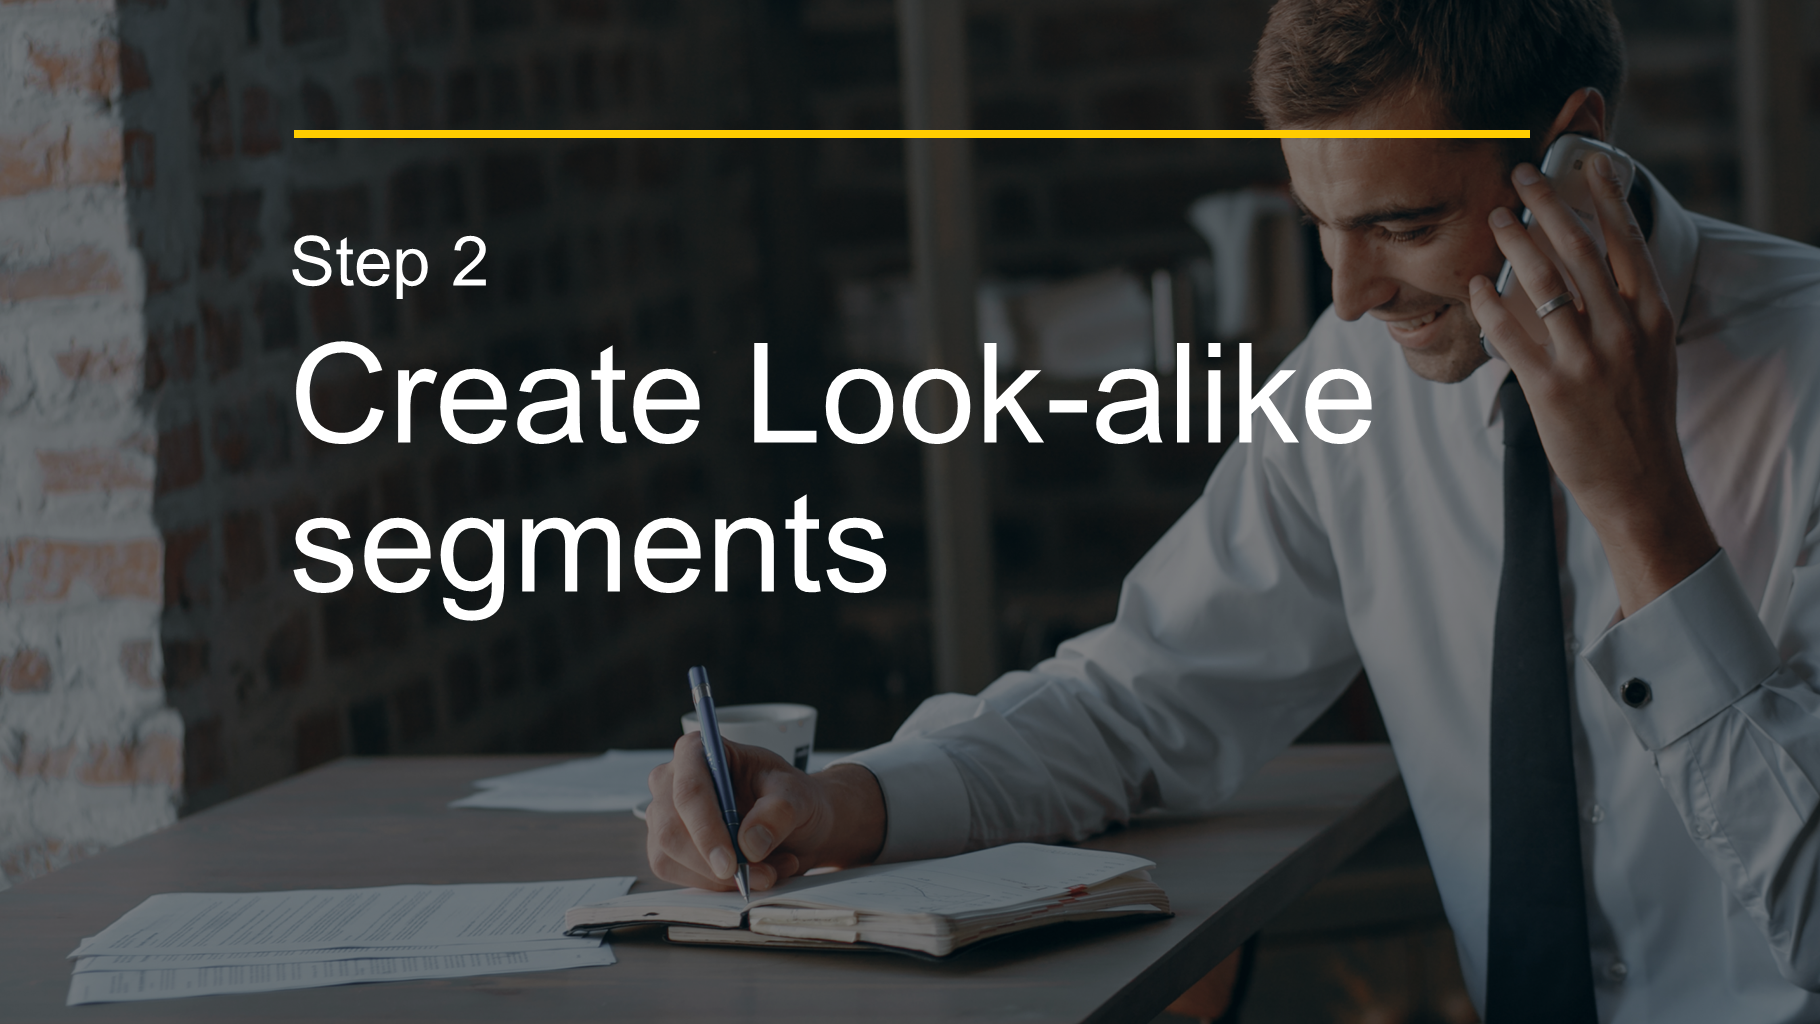 Step 2 Create Look-alike segments